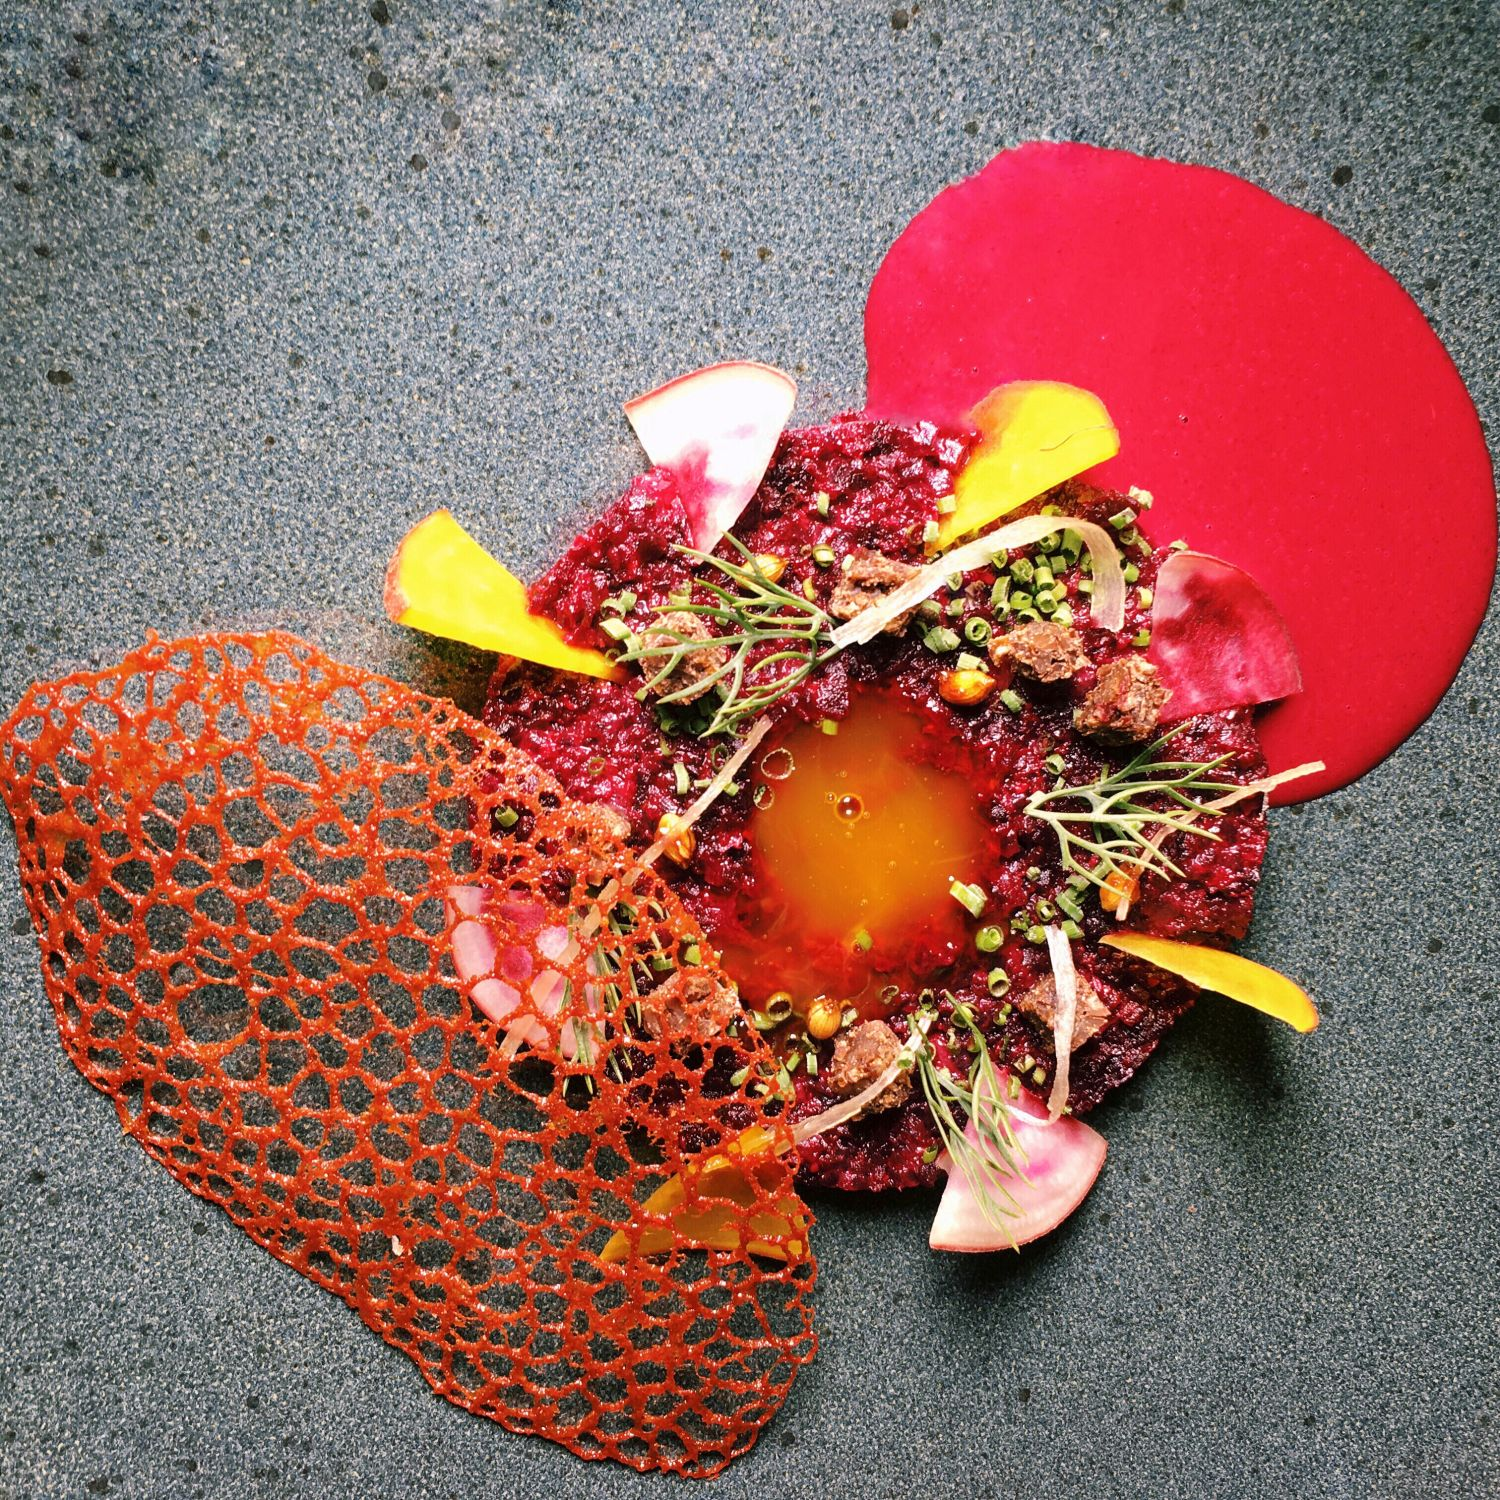 Textures of Beetroot - Bacchanalia